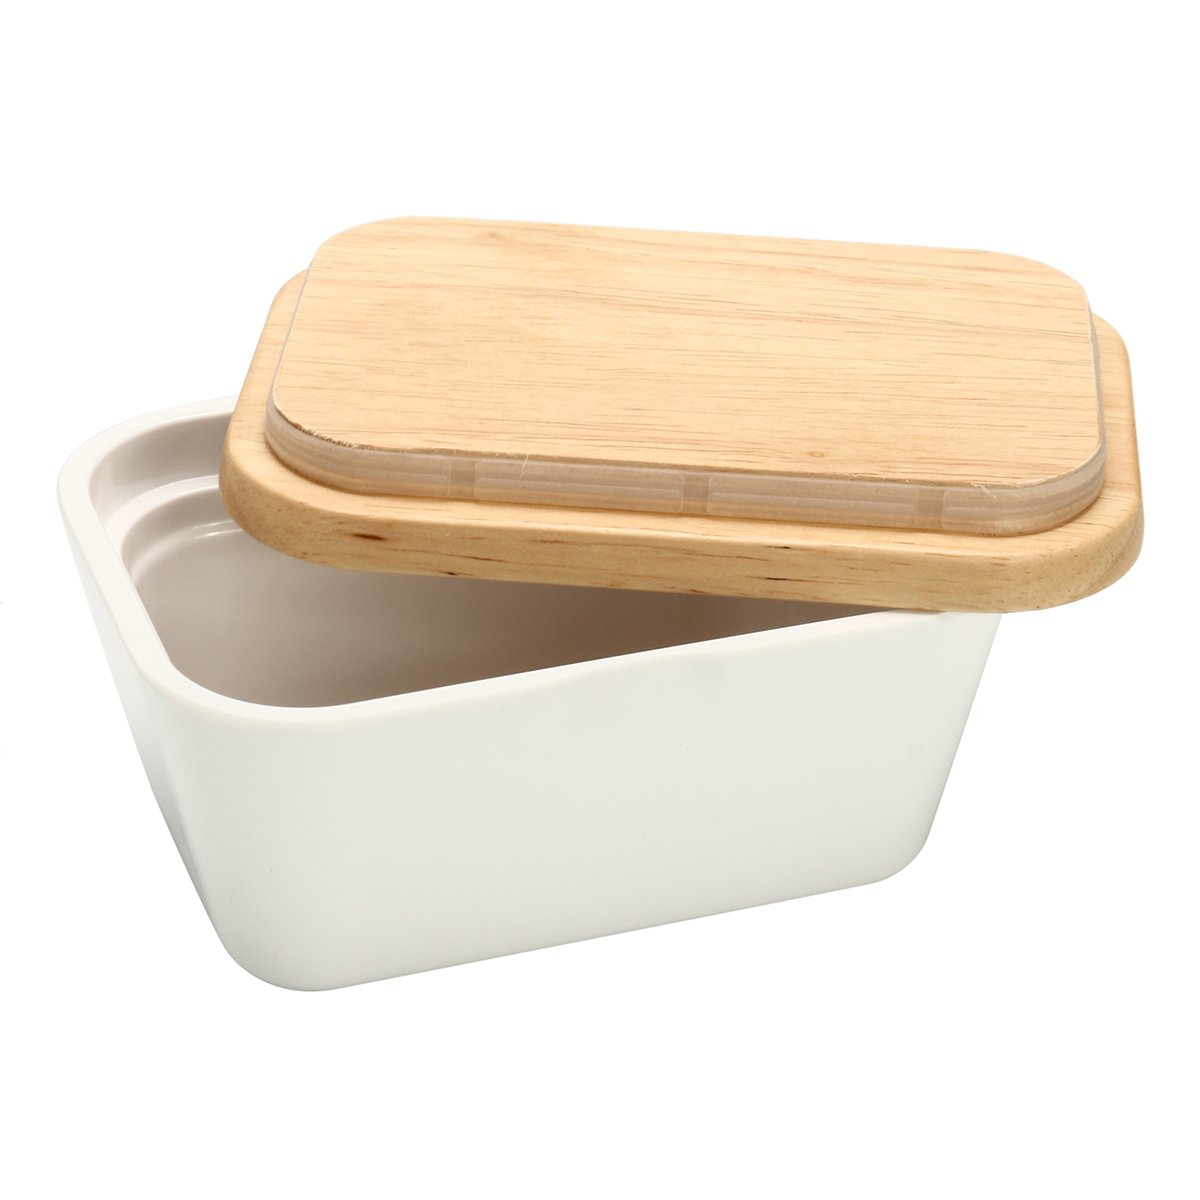 Vivona Hardware & Accessories Butter Box Dish Holder Serving Storage Container Wood Melamine with Lid - (Capacity: 500ml)